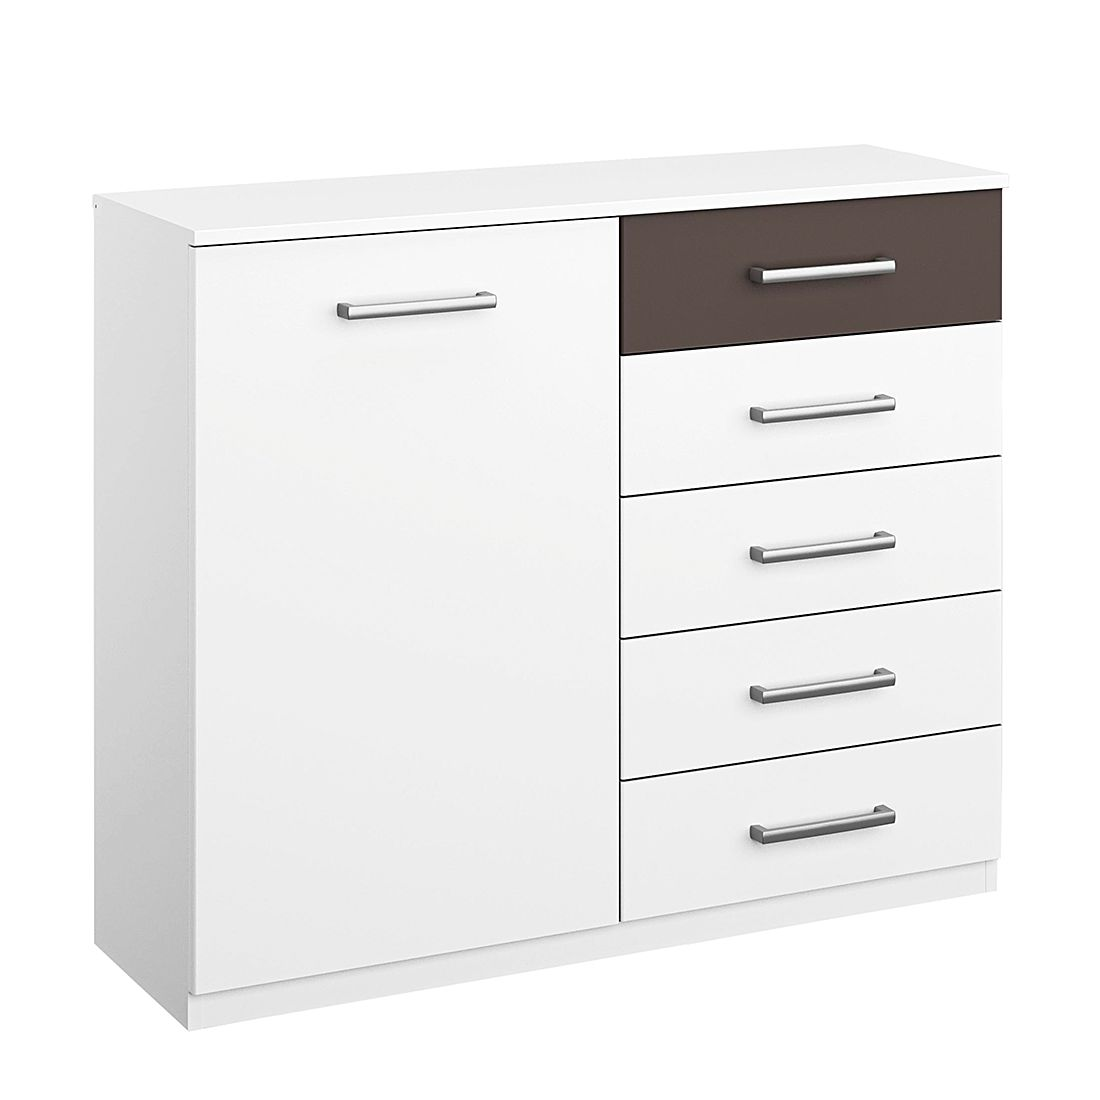 Commode Barcelona I - Blanc alpin / Gris lave, Rauch Packs